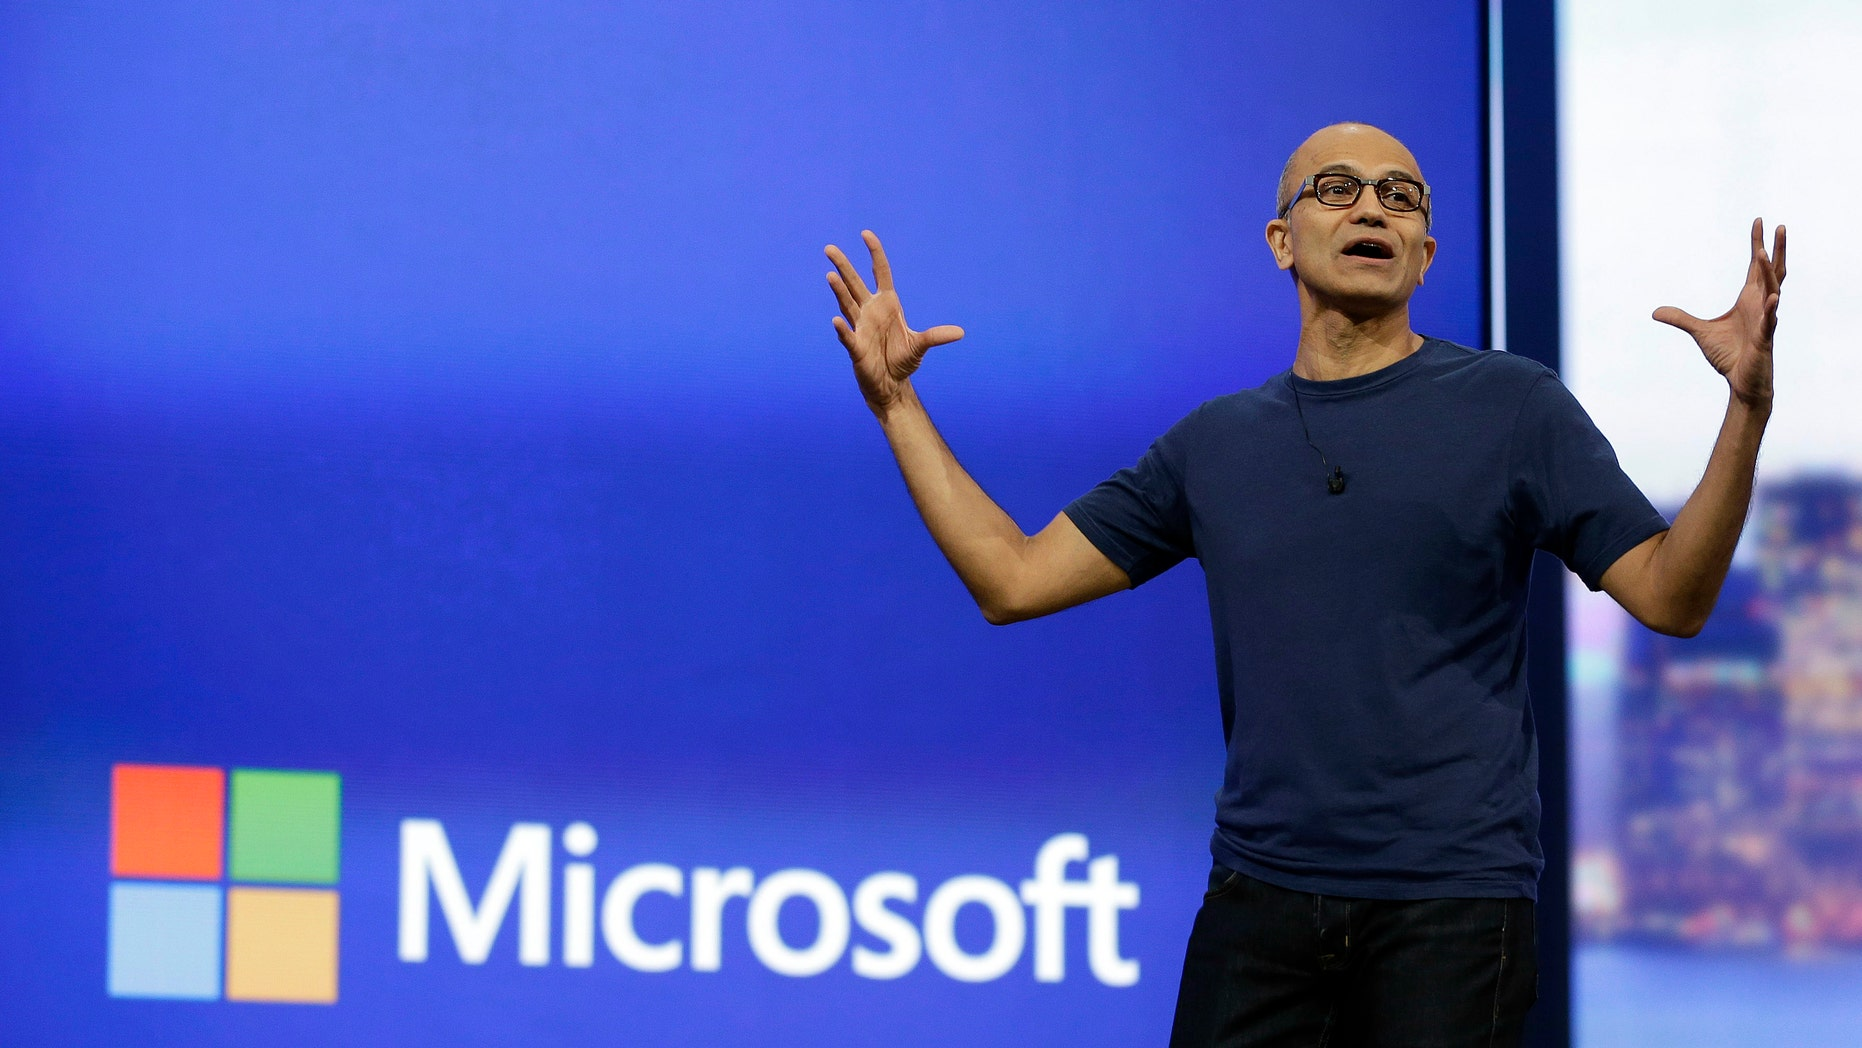 In this April 2, 2014 file photo, Microsoft CEO Satya Nadella gestures during the keynote address of the Build Conference in San Francisco.